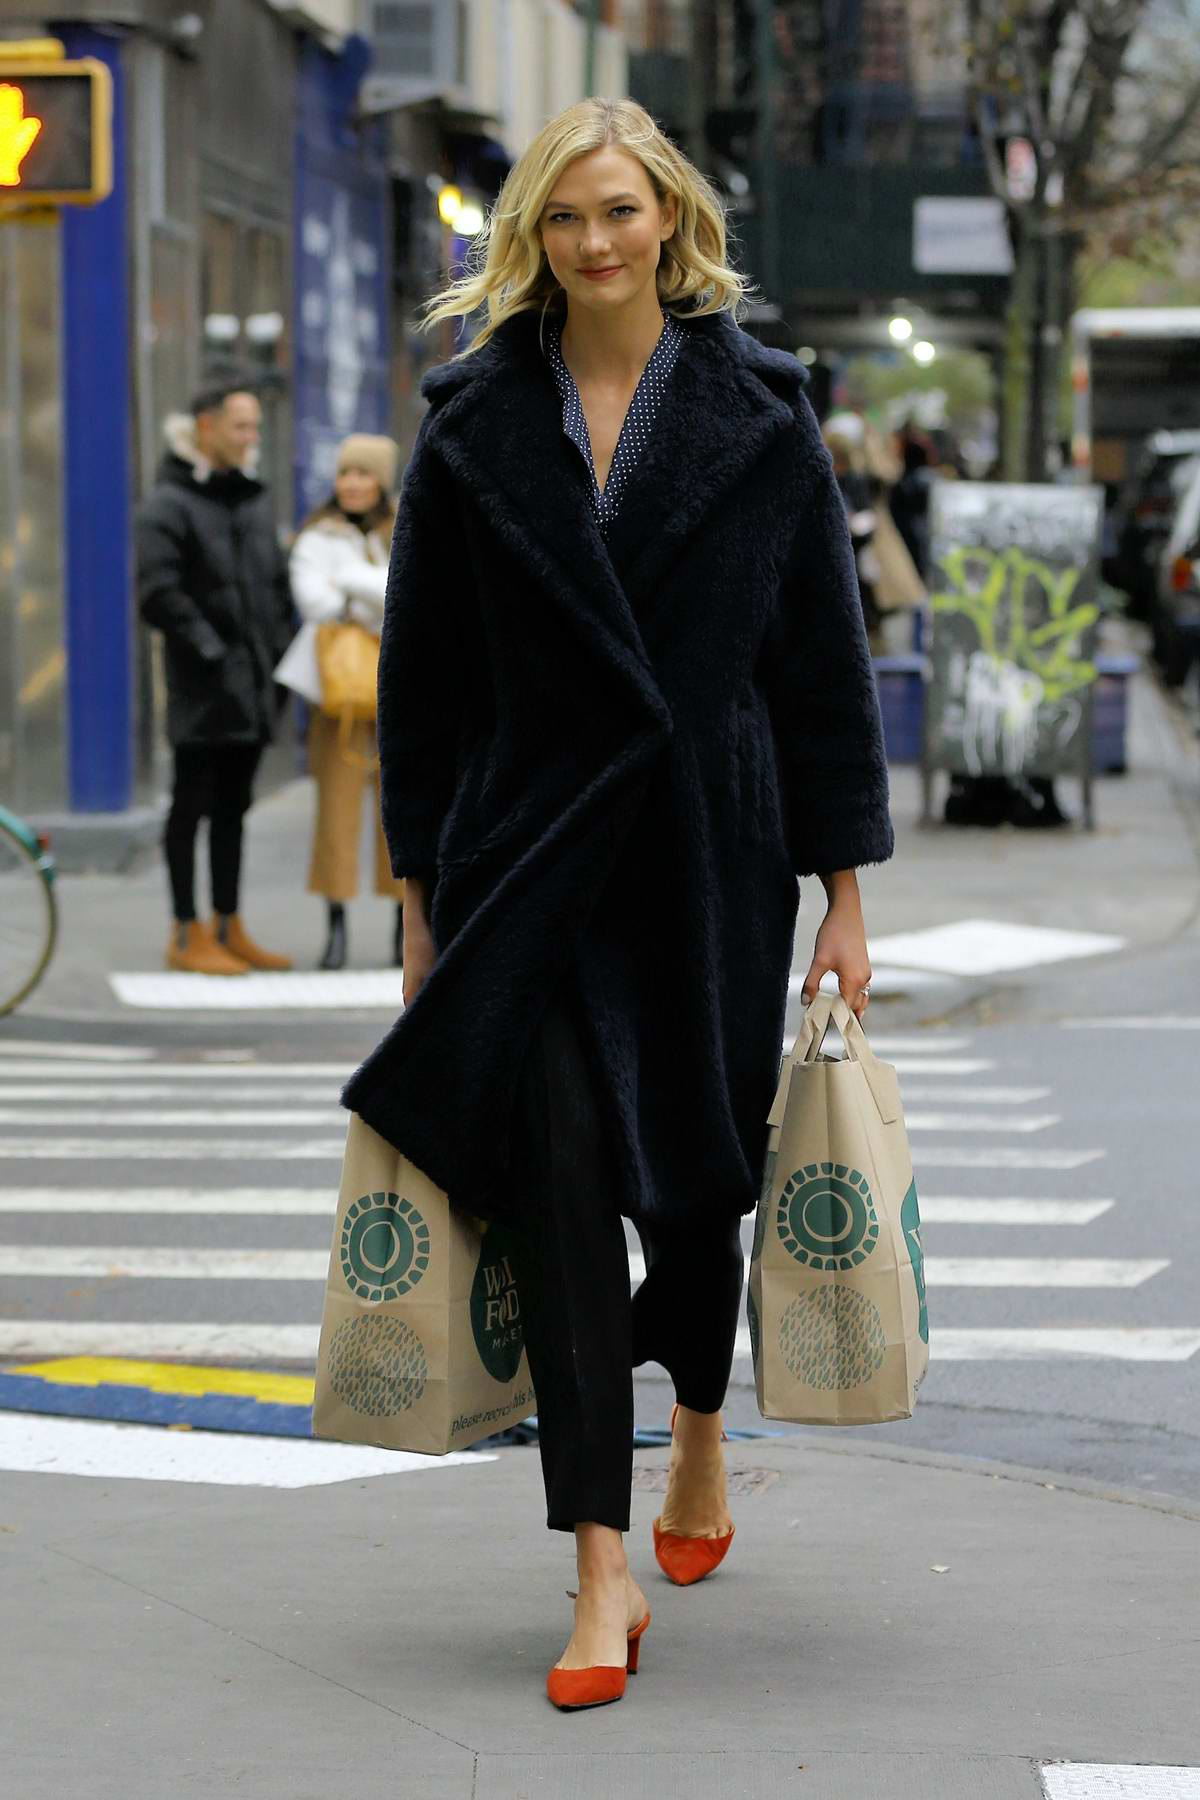 Karlie Kloss Walks Home Carrying Two Bags Of Groceries From Whole